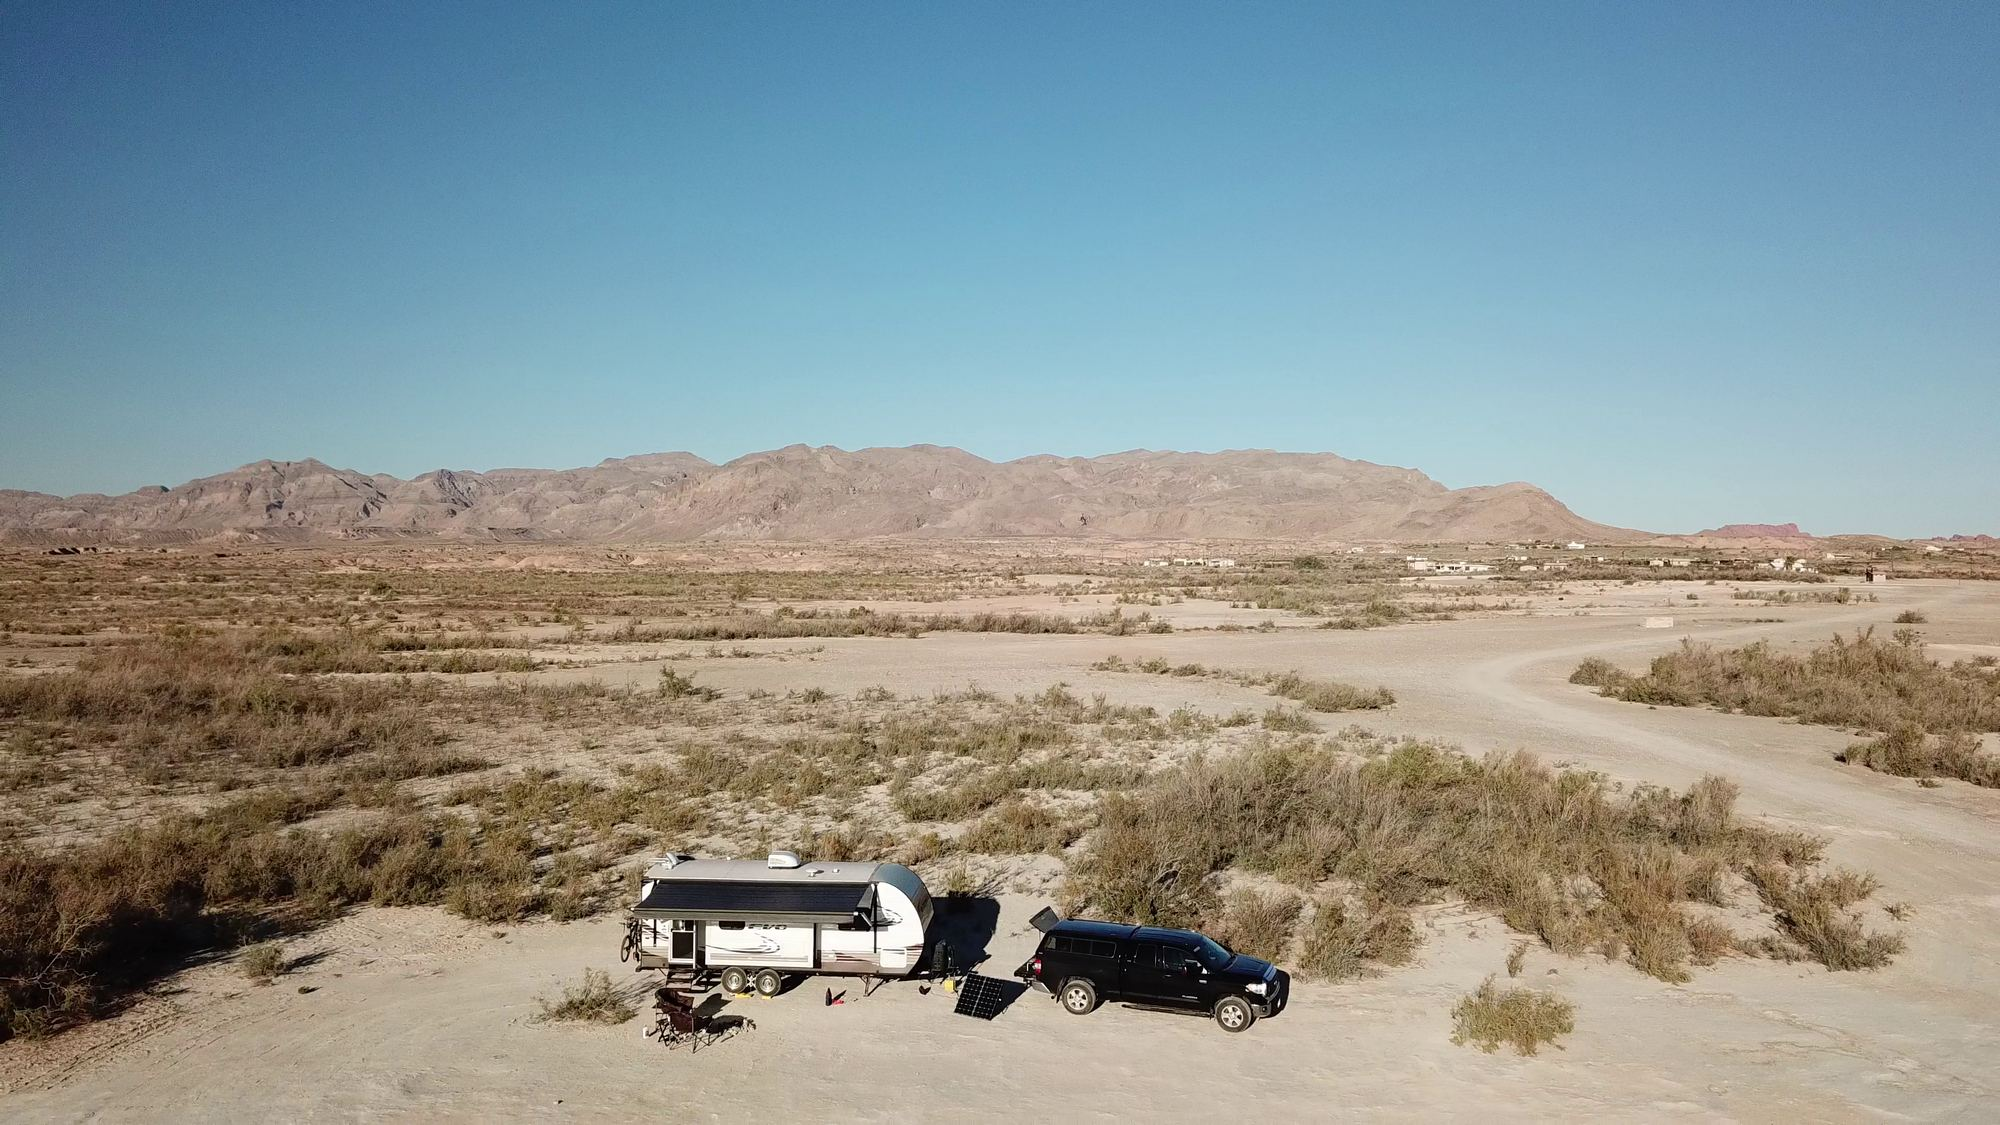 Our camp at Lake Mead